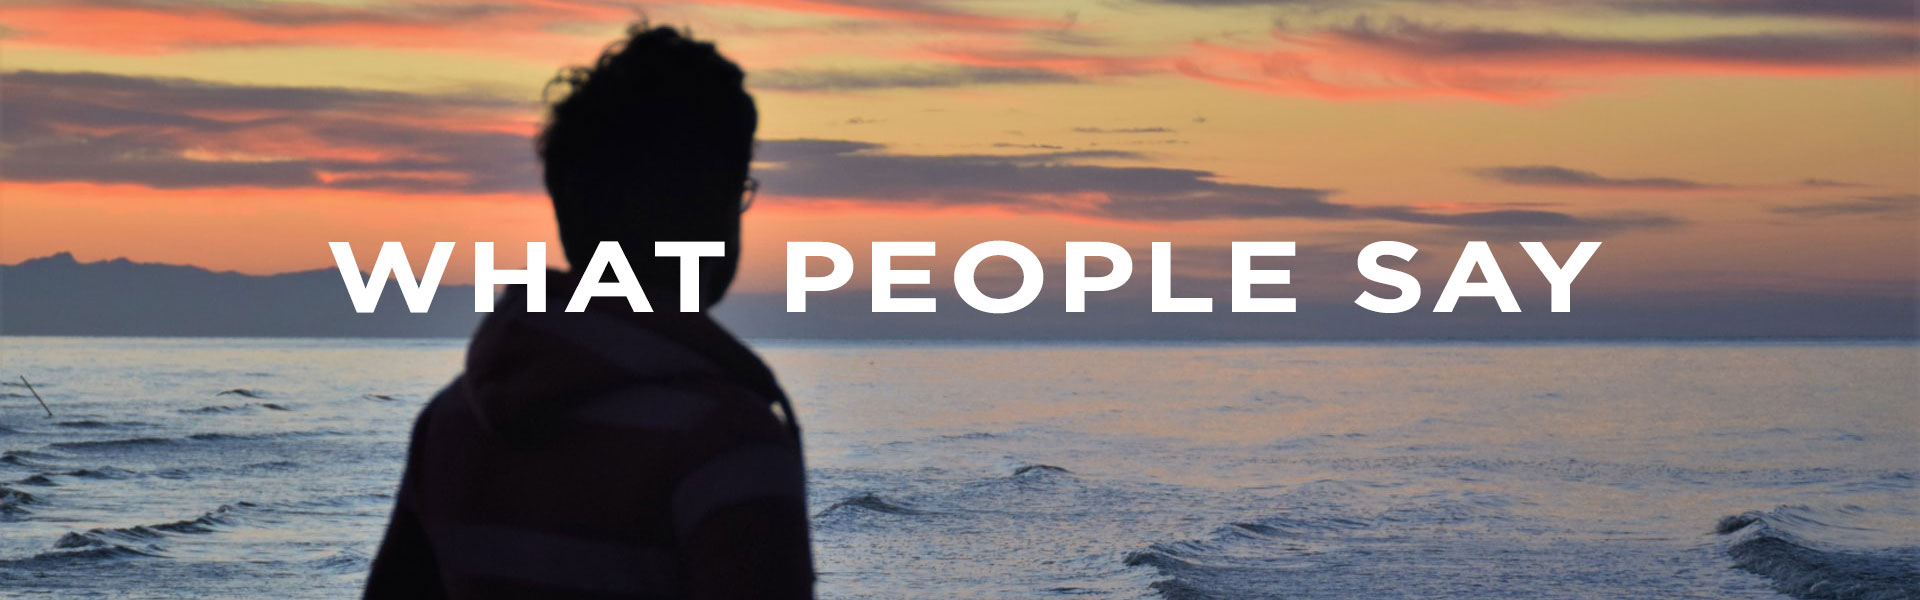 What People Say